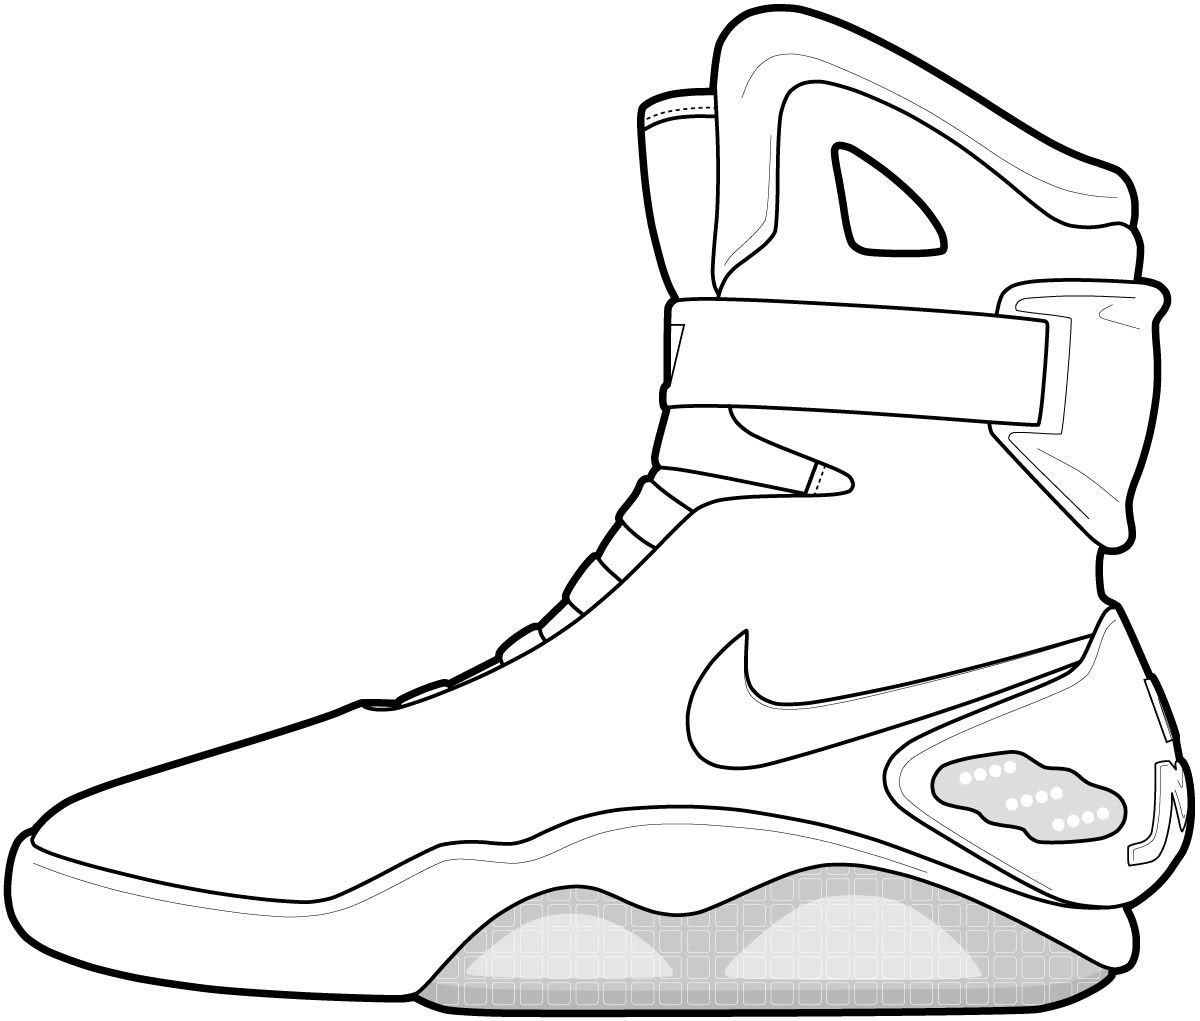 Coloring pages for jordans - Coloring Pages For Shoes In Jordans Coloring